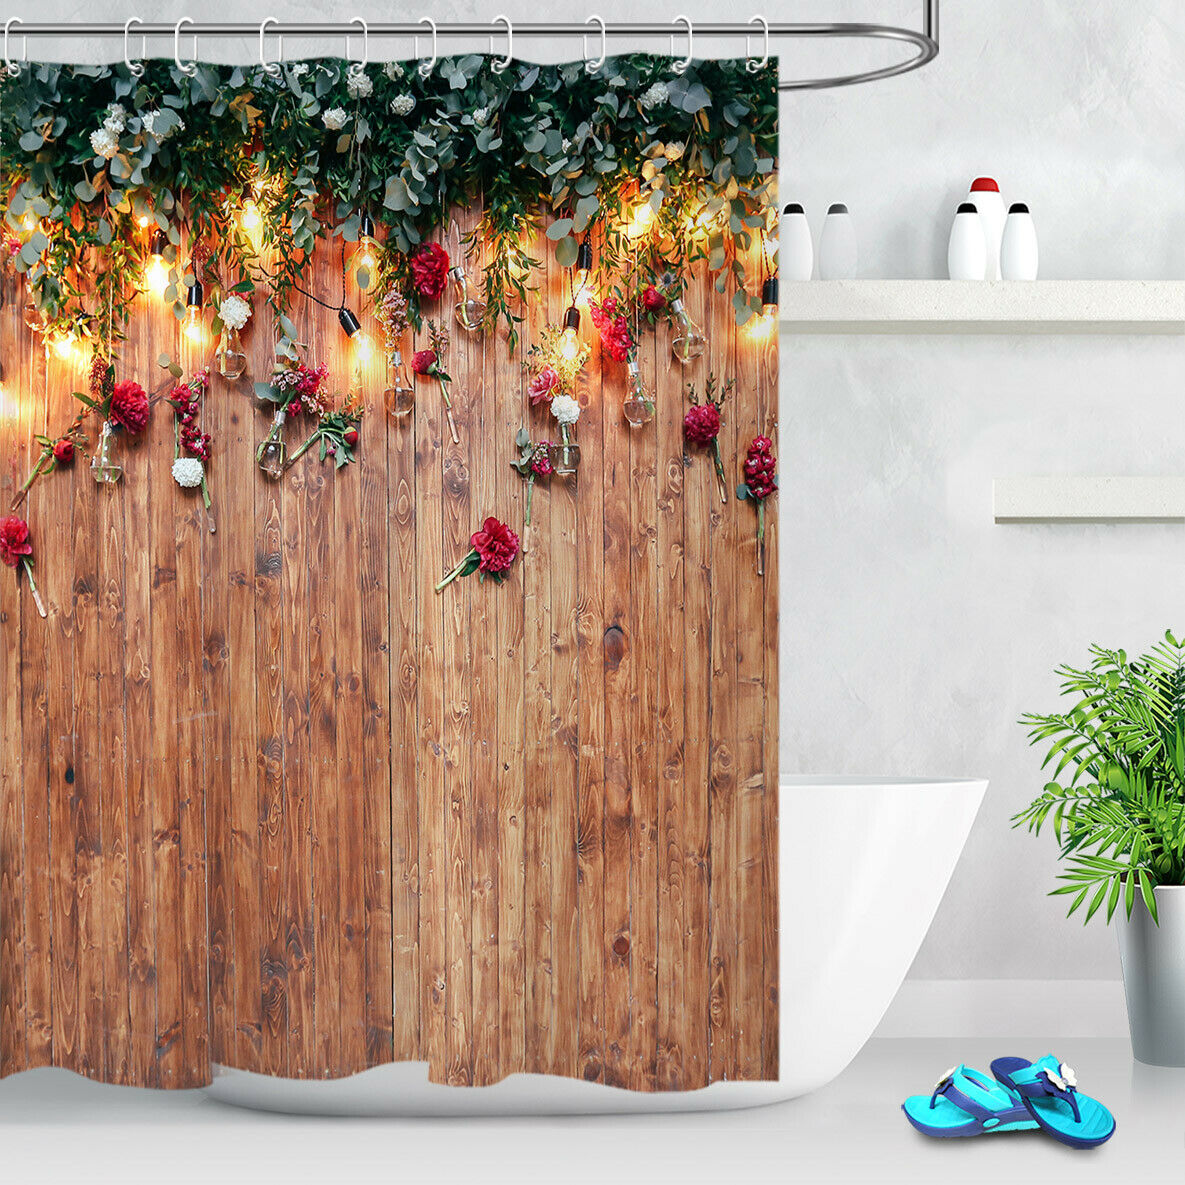 Home Garden Shower Curtains Rustic Board Green Leaves Floral Shower Curtain Set Waterproof Fabric Hooks Magnumcap Com